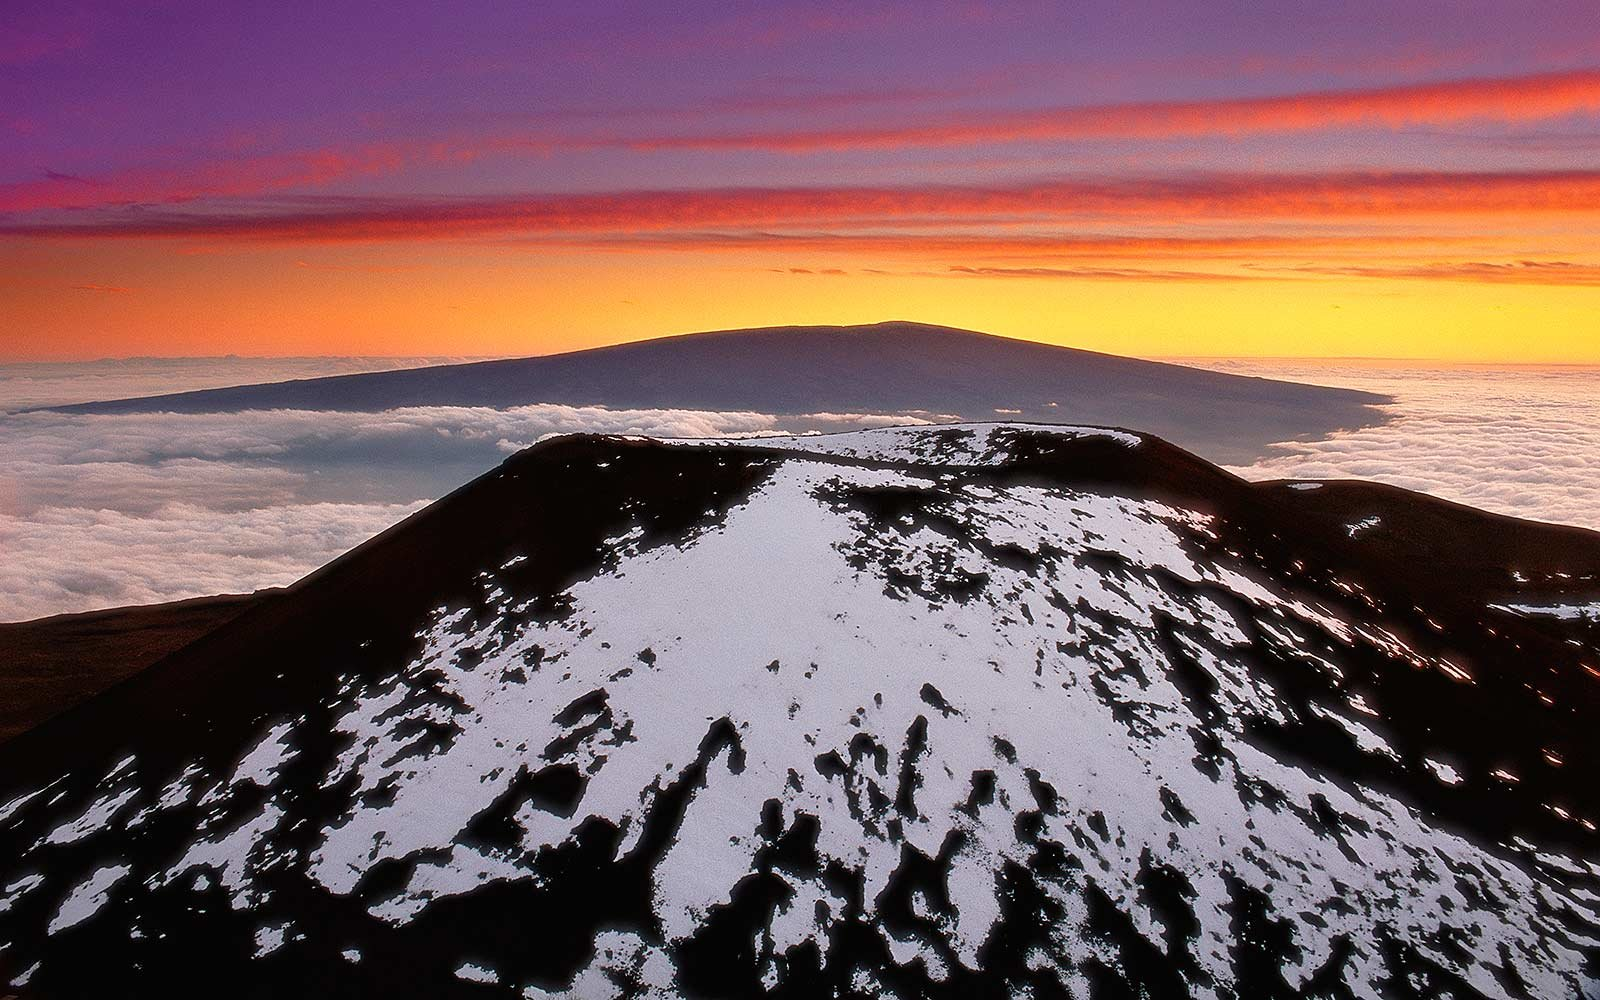 The Largest Volcano in the World